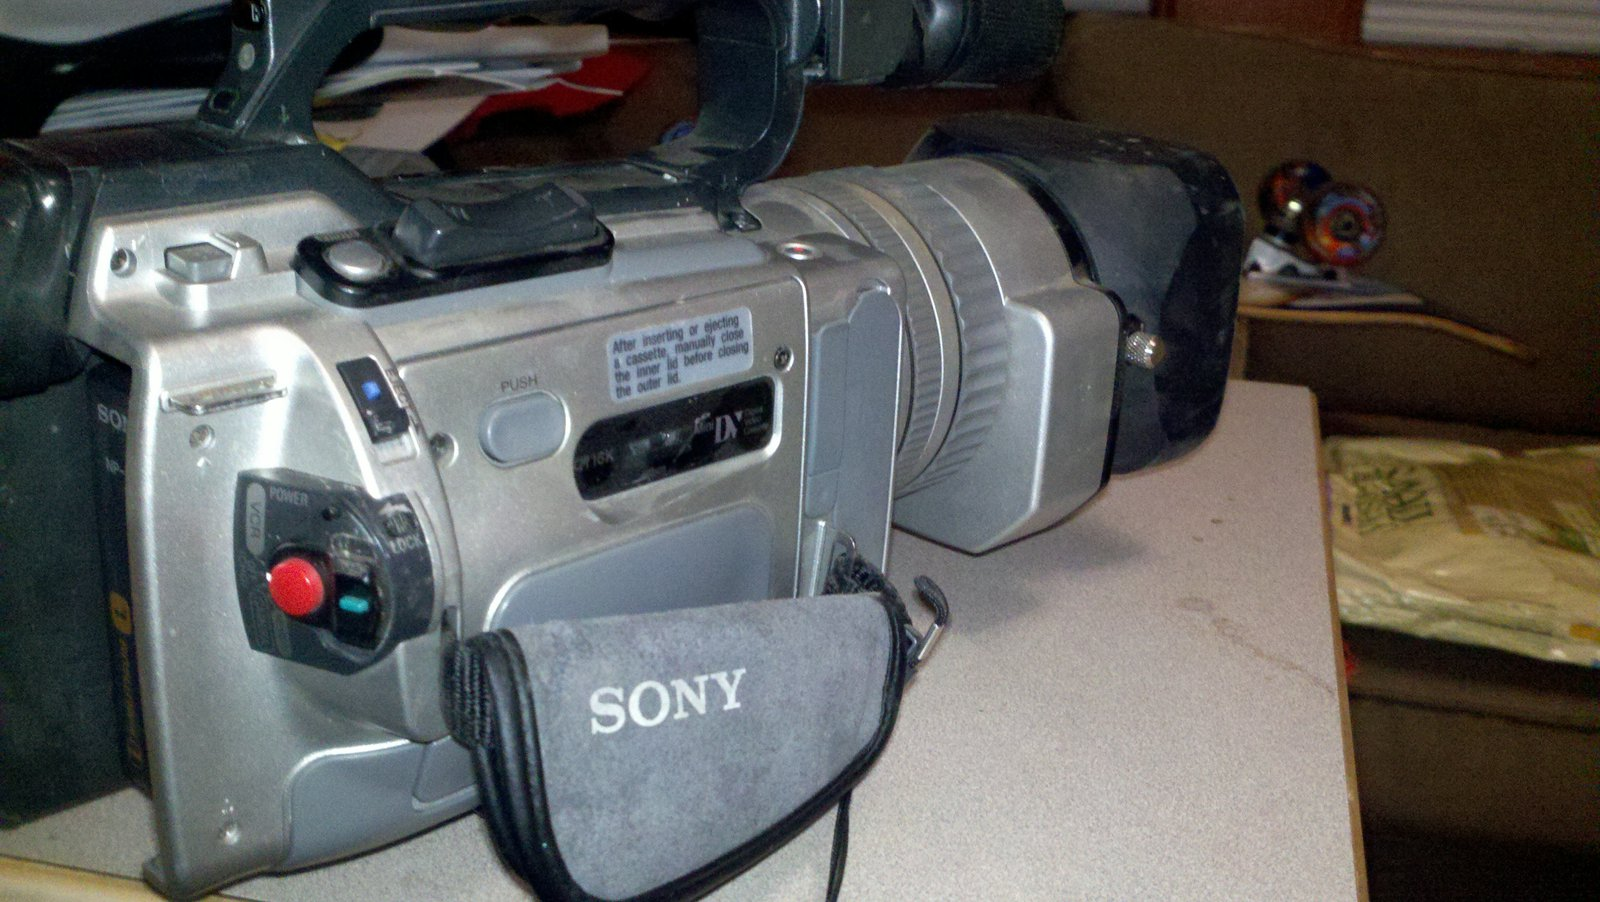 Vx2000 for sale